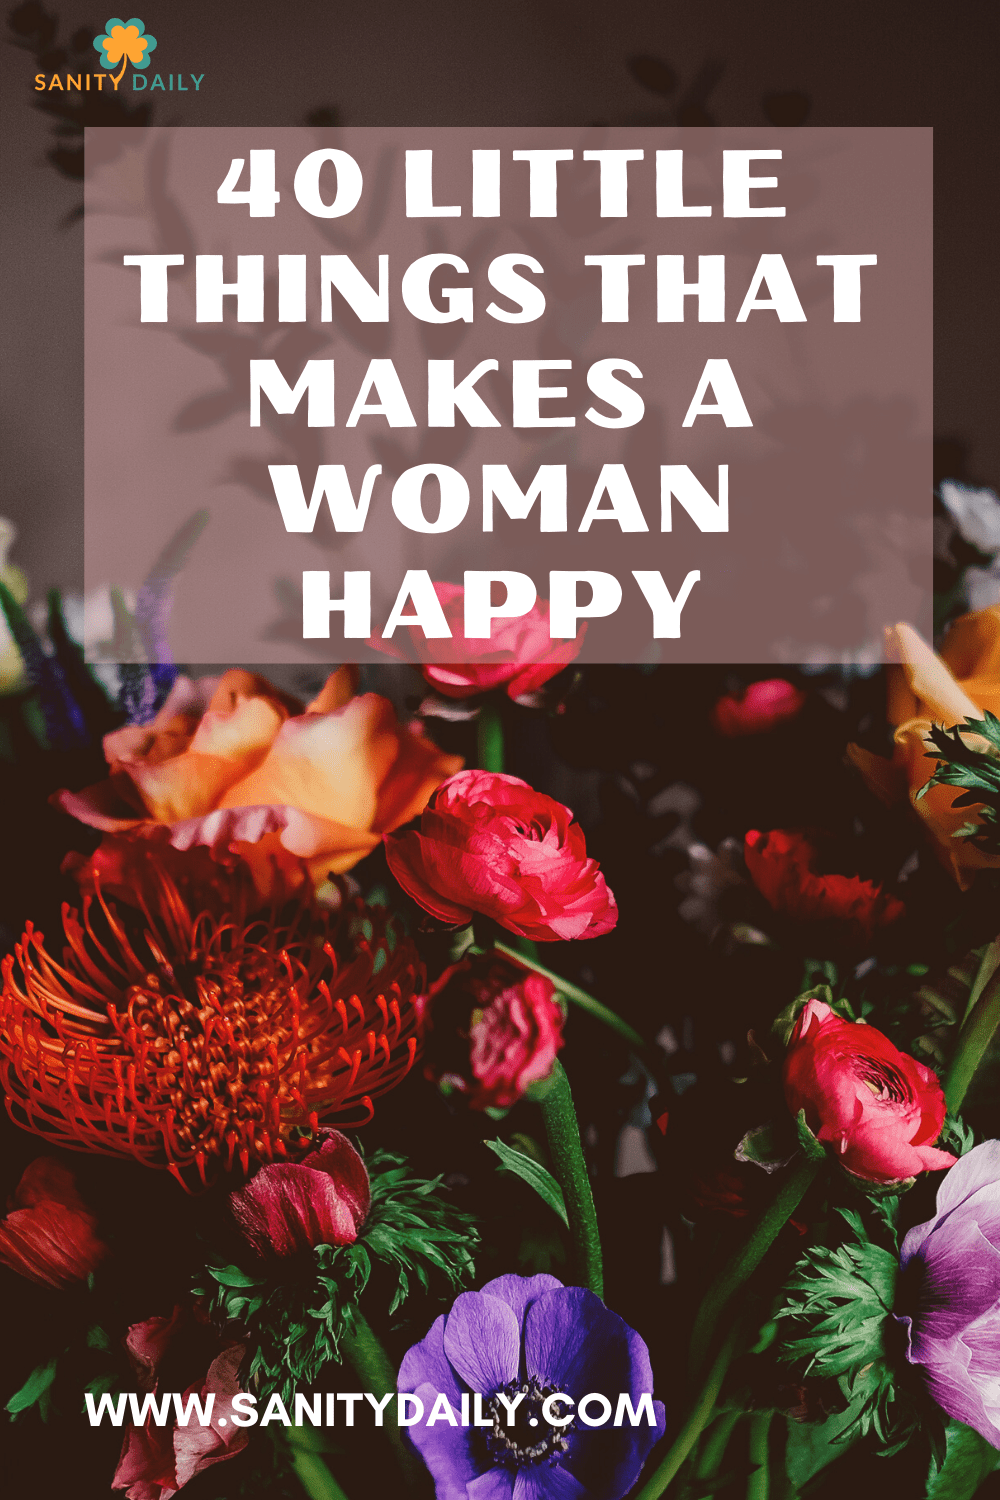 What makes a woman happy